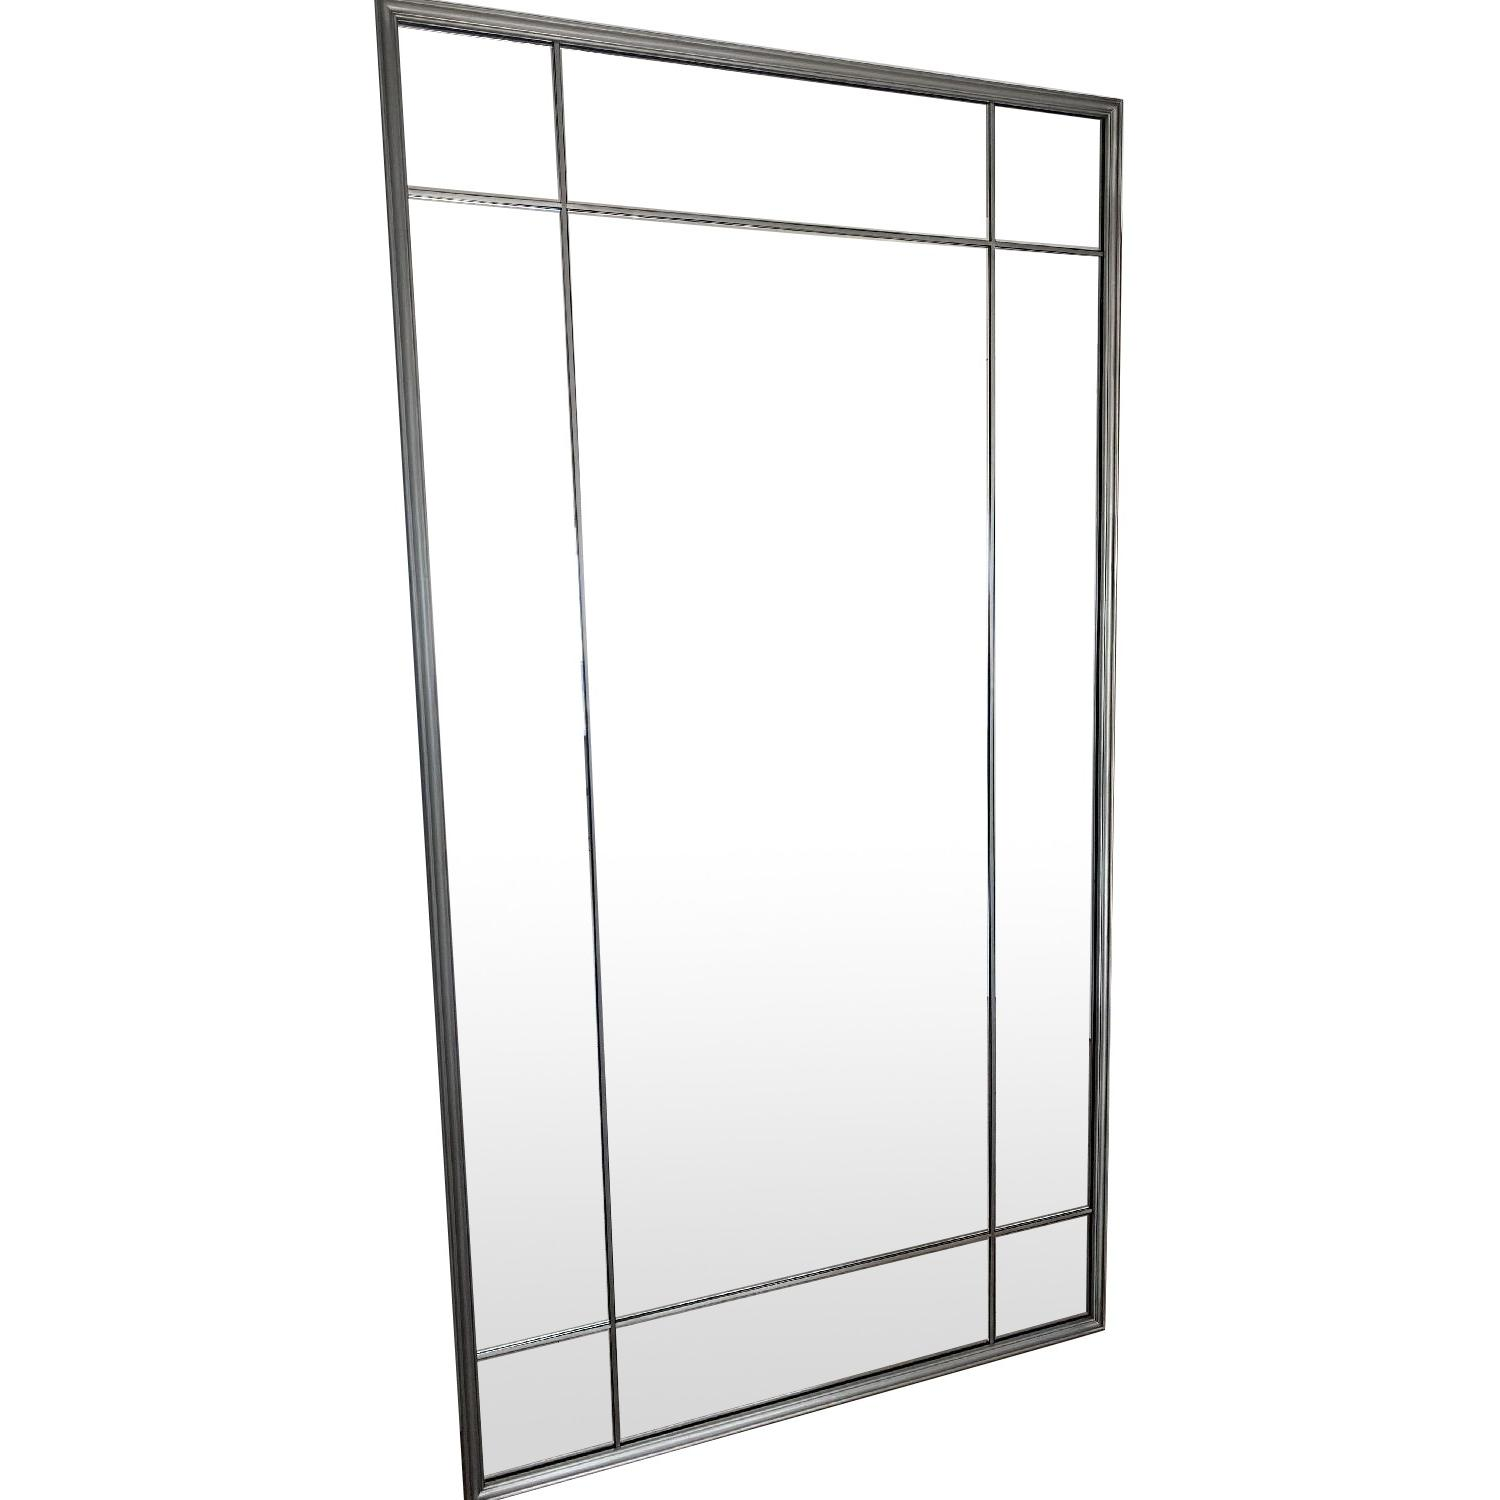 Restoration Hardware Full Length Mirror